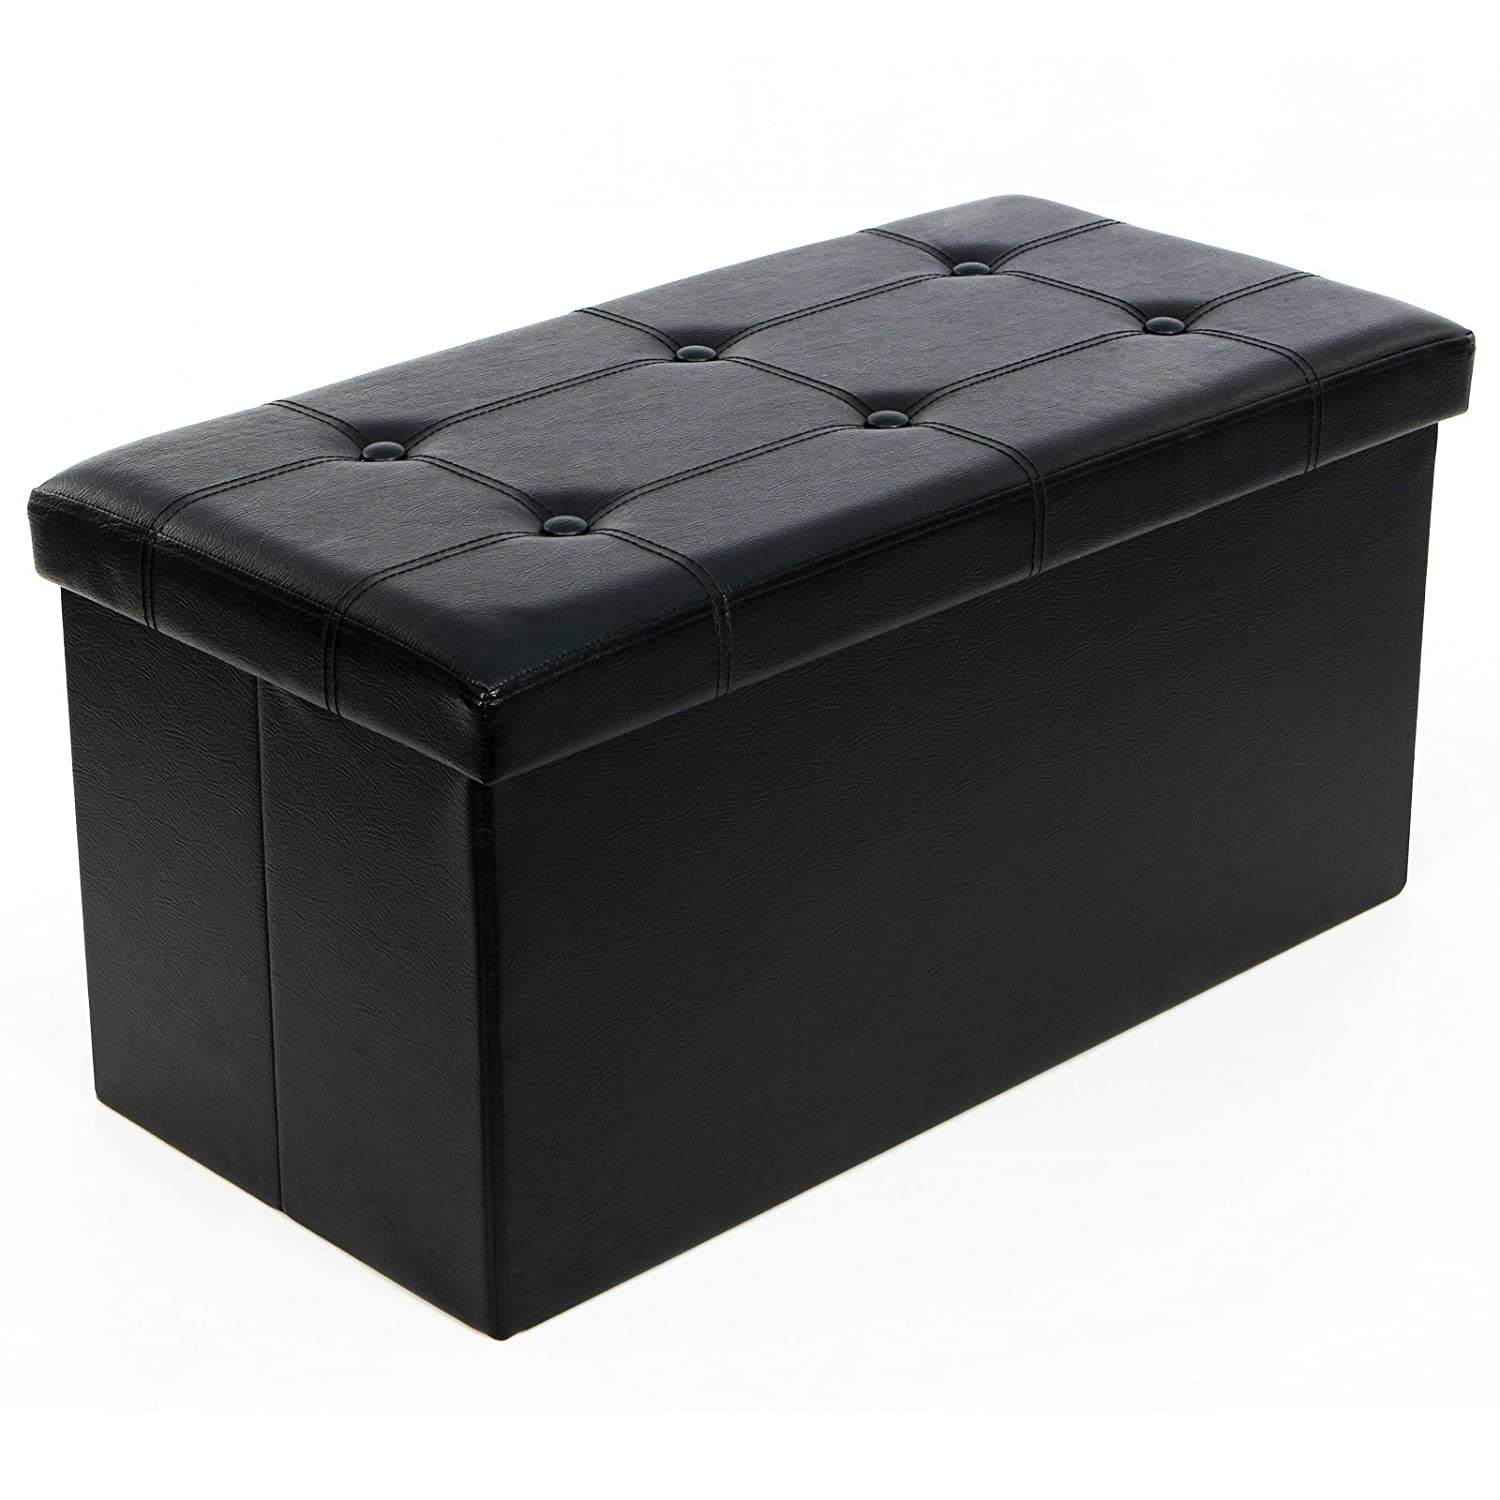 Storage Ottomans - Storage Ottoman Amazon.com